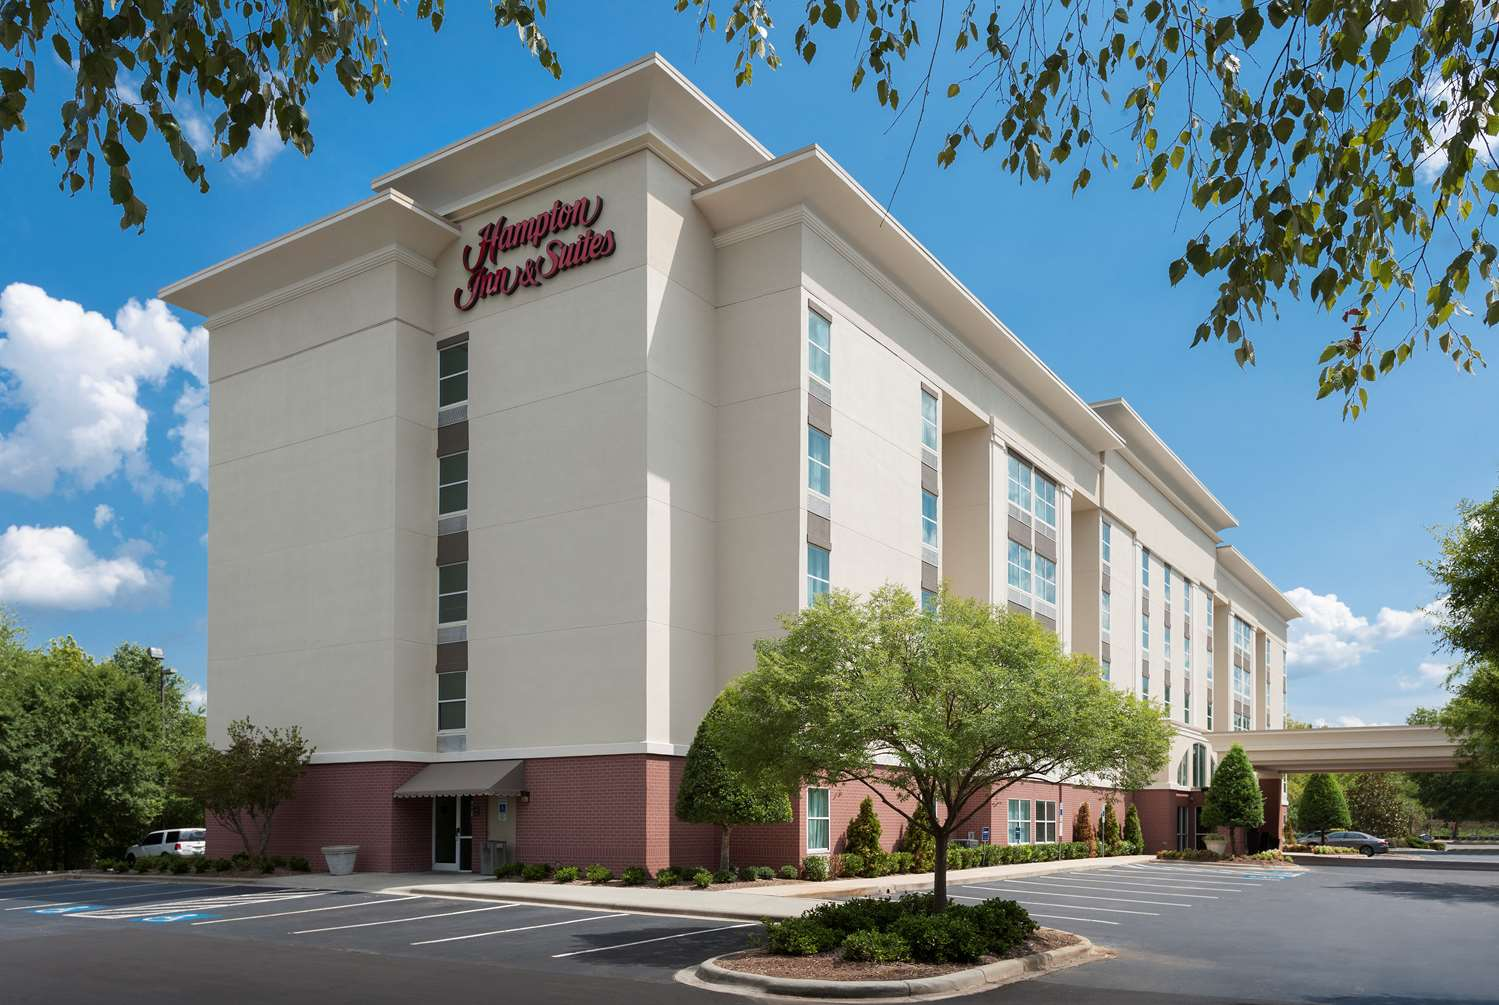 Hampton Inn & Suites Pineville